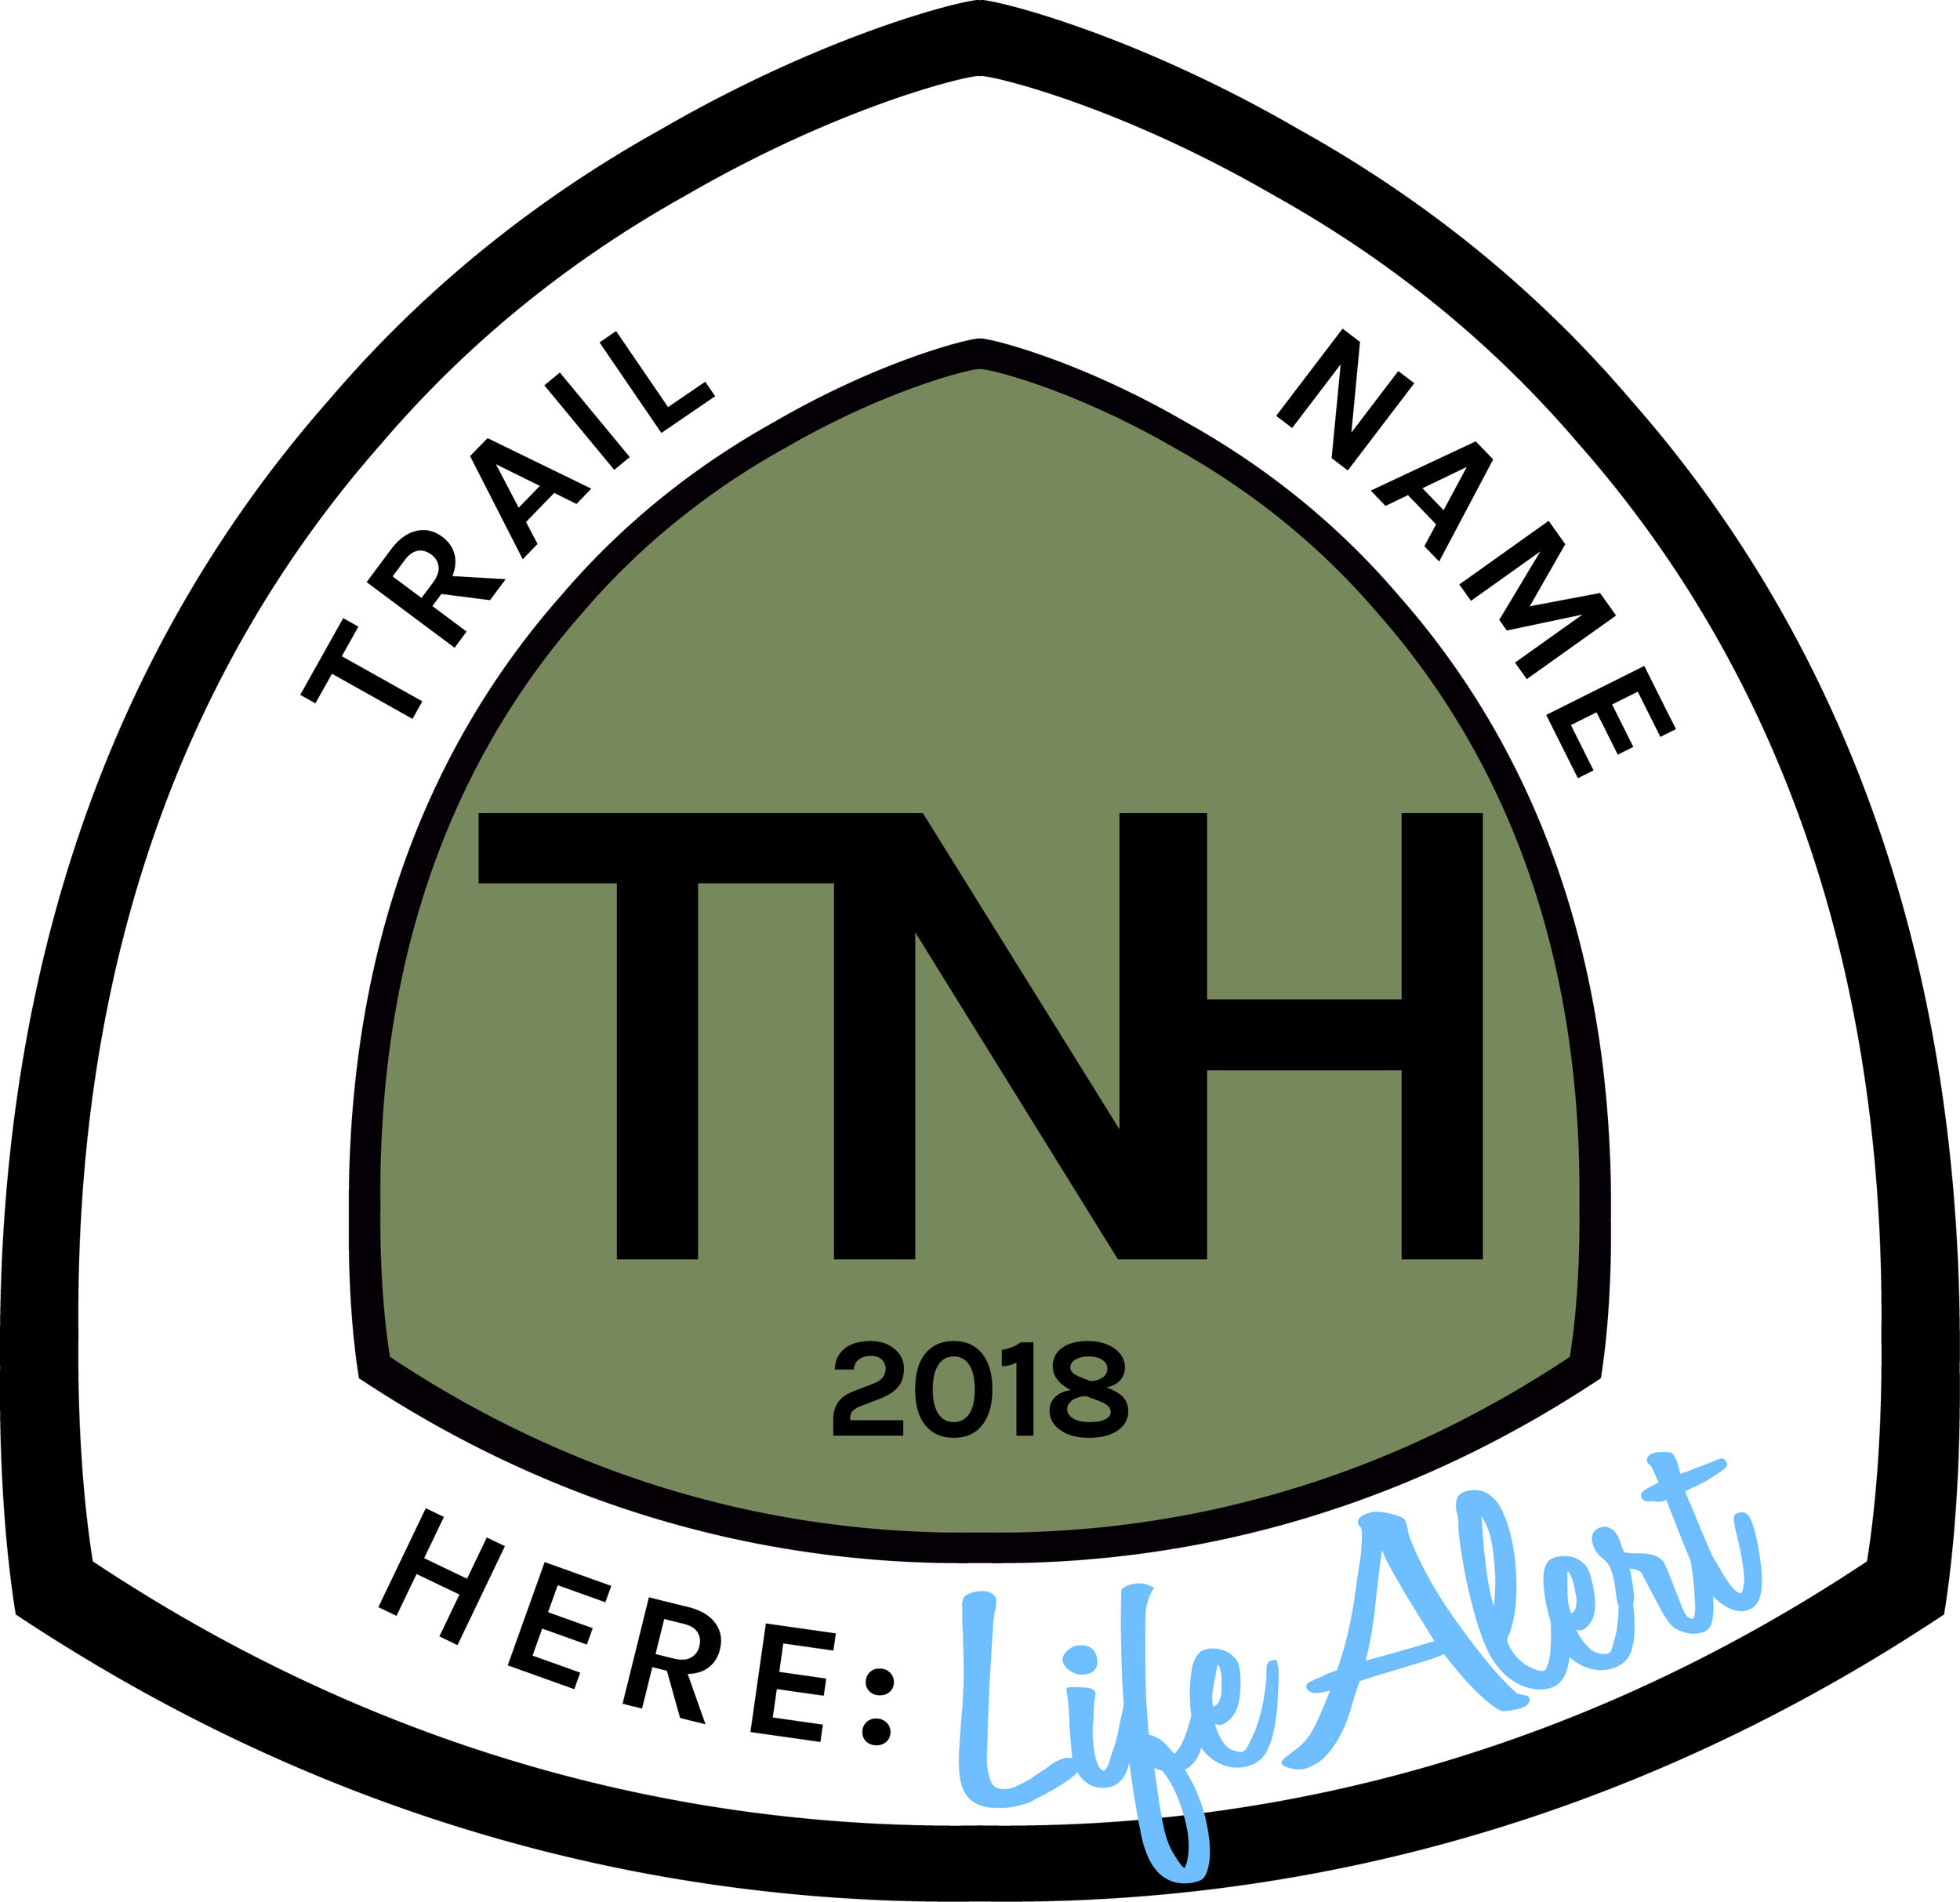 TNH-Final-NoMountains@4x-100.jpg